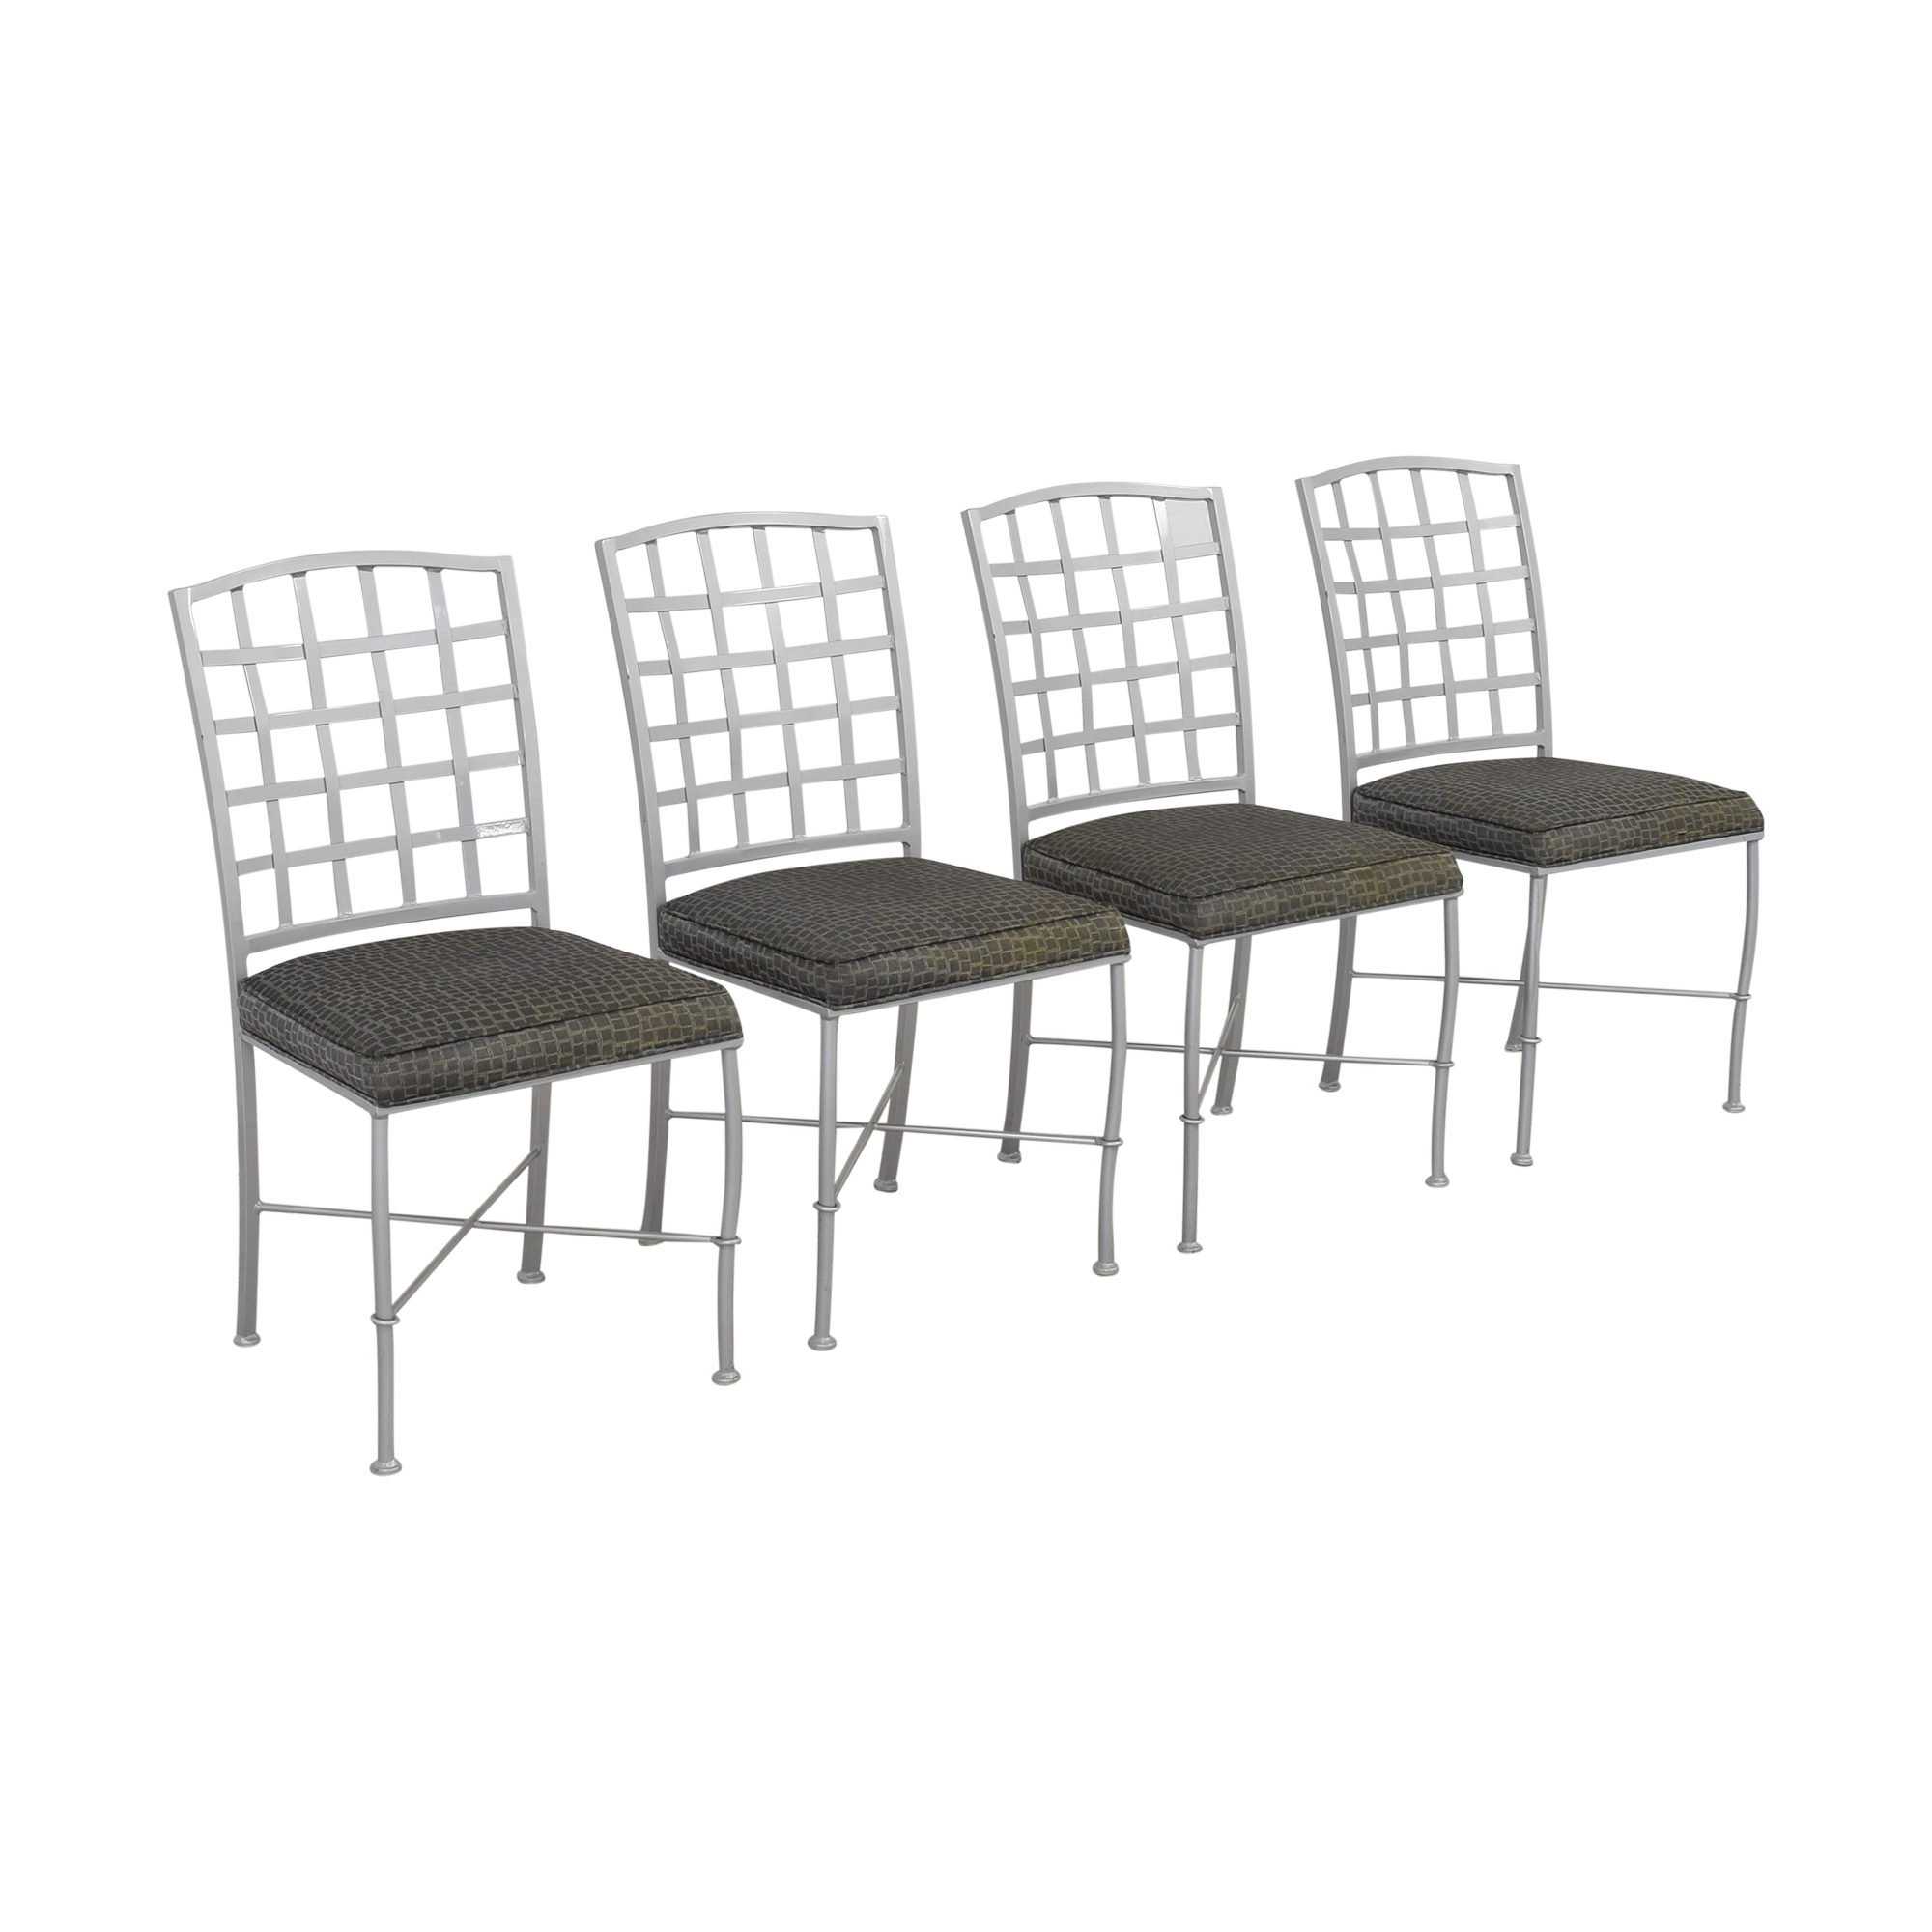 buy Johnston Casuals Lattice Back Dining Chairs Johnston Casuals